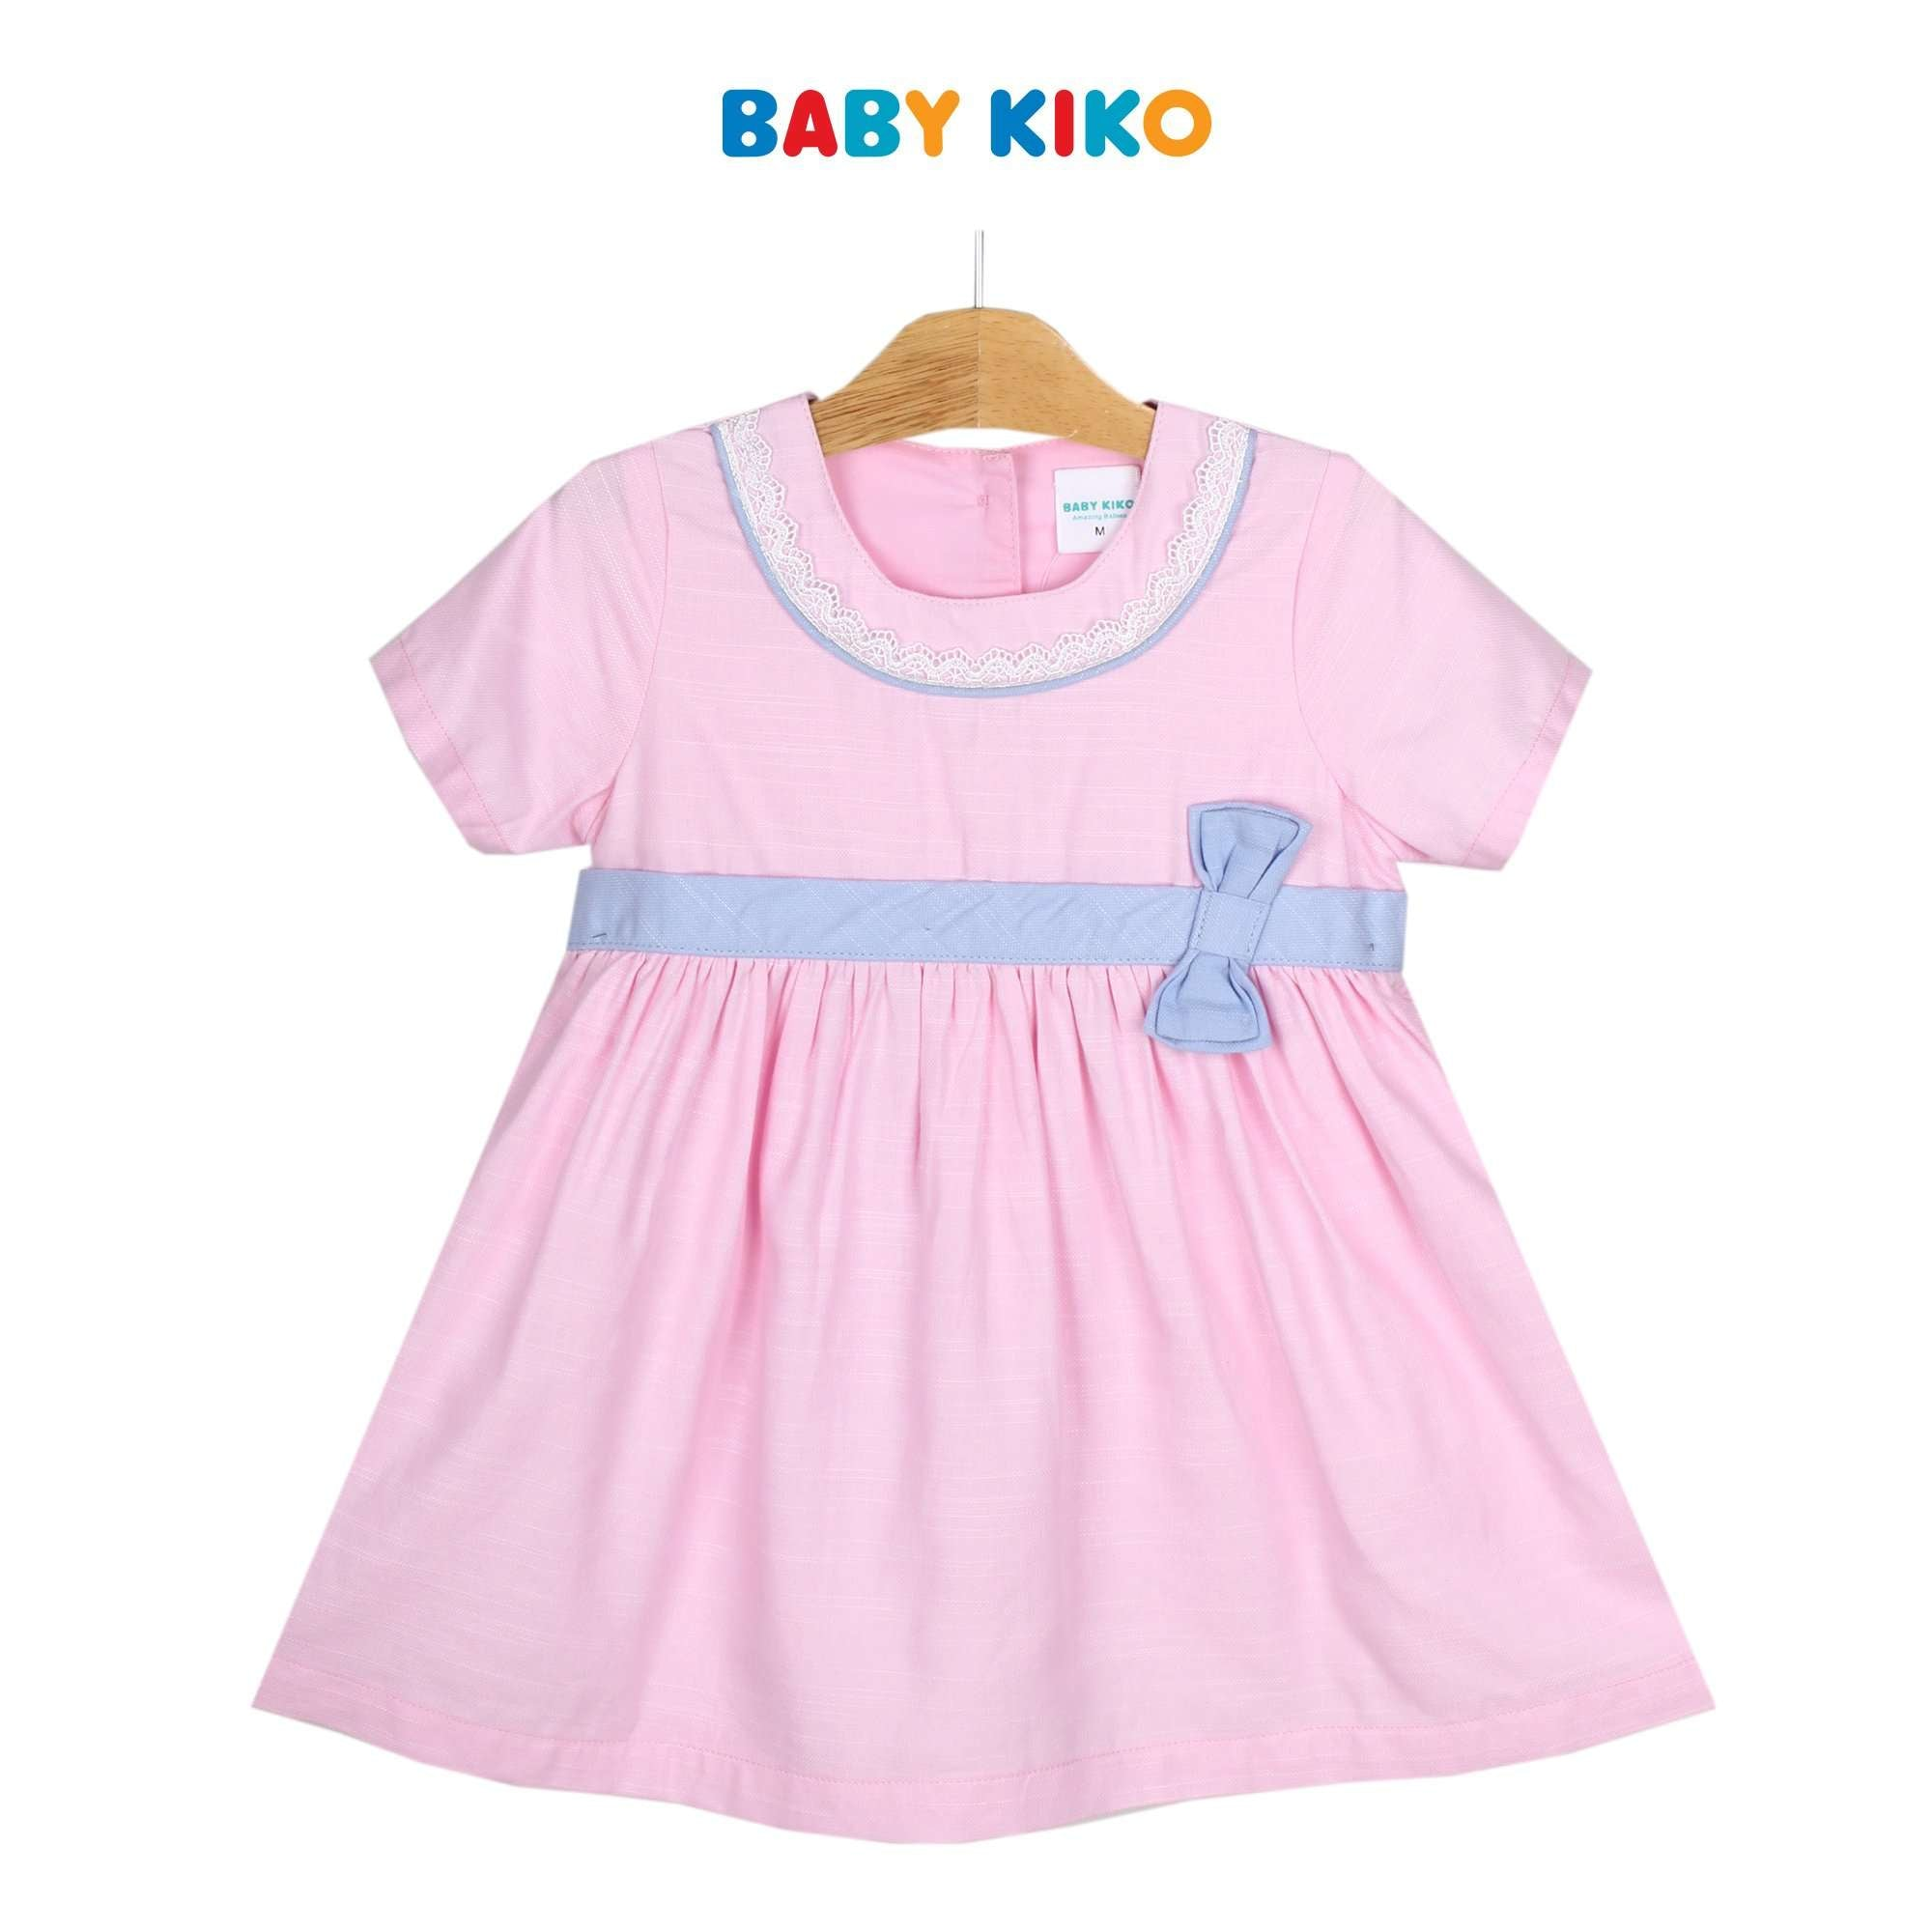 Baby KIKO Toddler Girl Short Sleeve Dress - Blue 315134-312 : Buy Baby KIKO online at CMG.MY